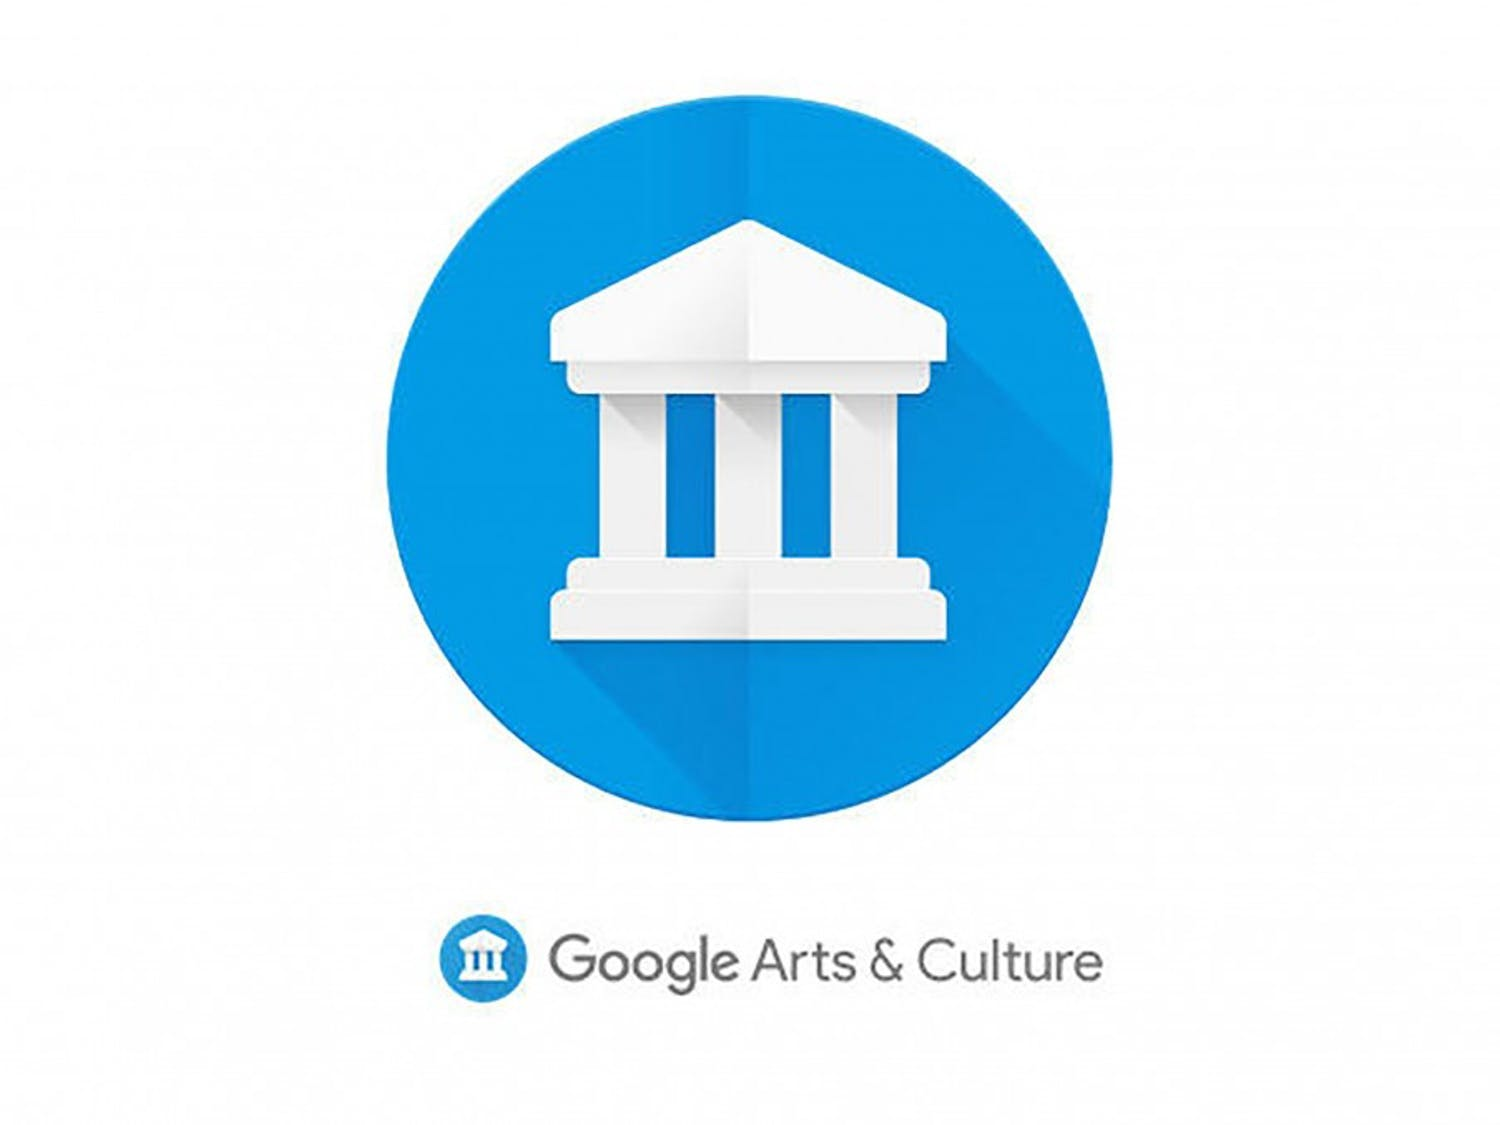 The Albright-Knox Art Gallery announced a recent collaboration with Google Arts and Culture, allowing access to a multitude of works from the gallery to be viewable online.